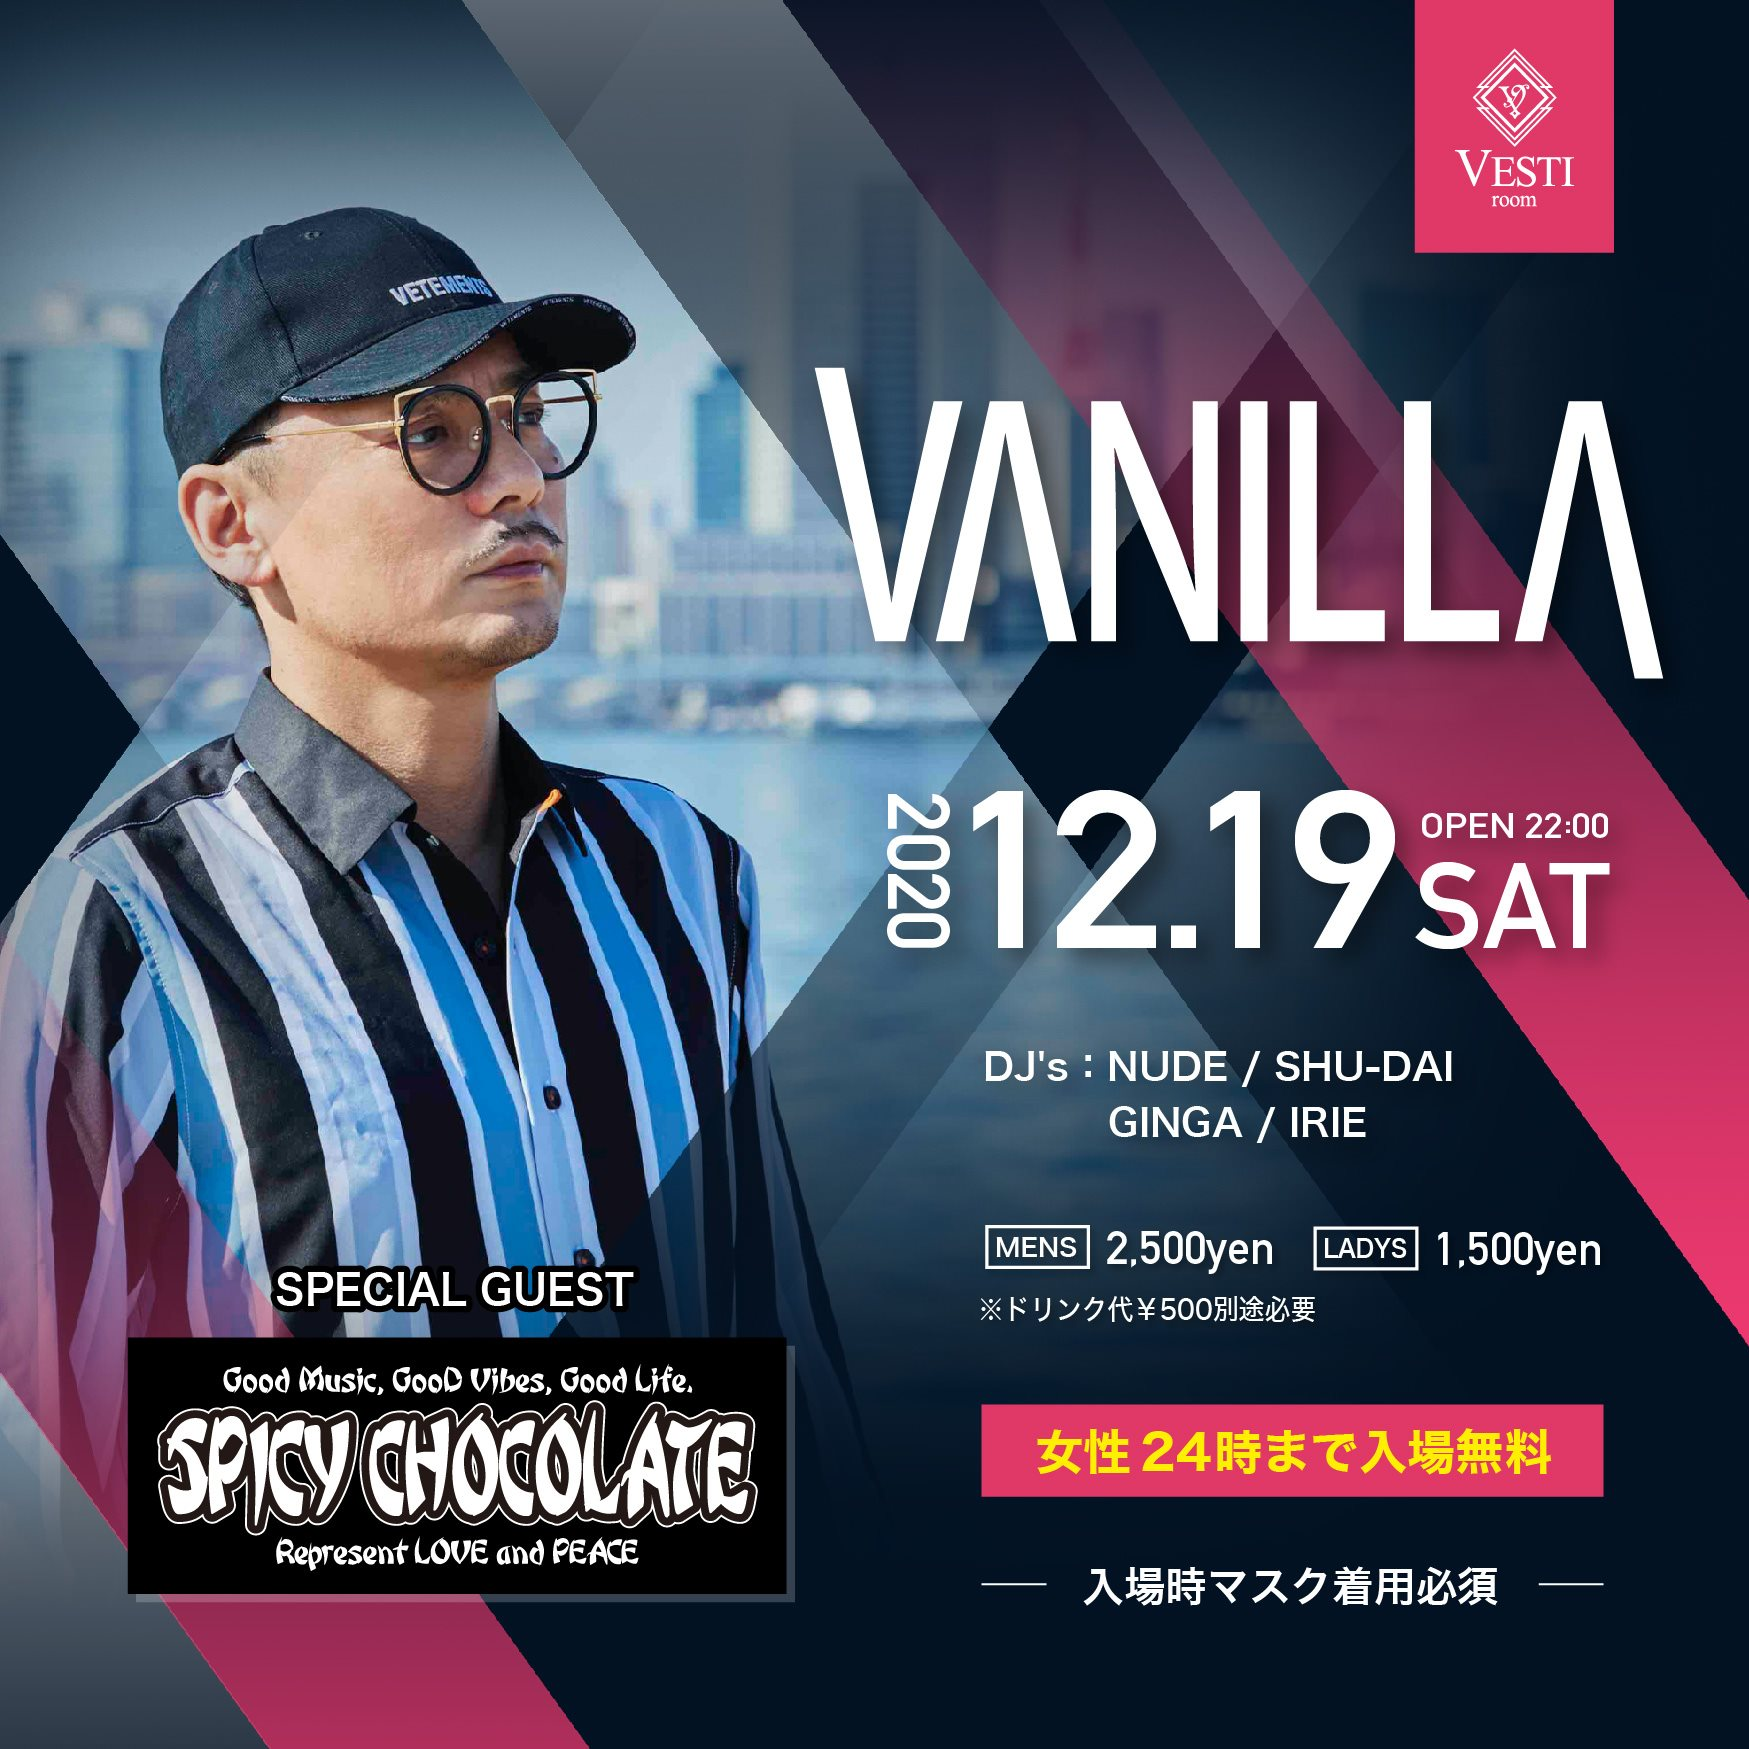 VANNILA ~SP GUEST : SPICY CHOCOLATE~